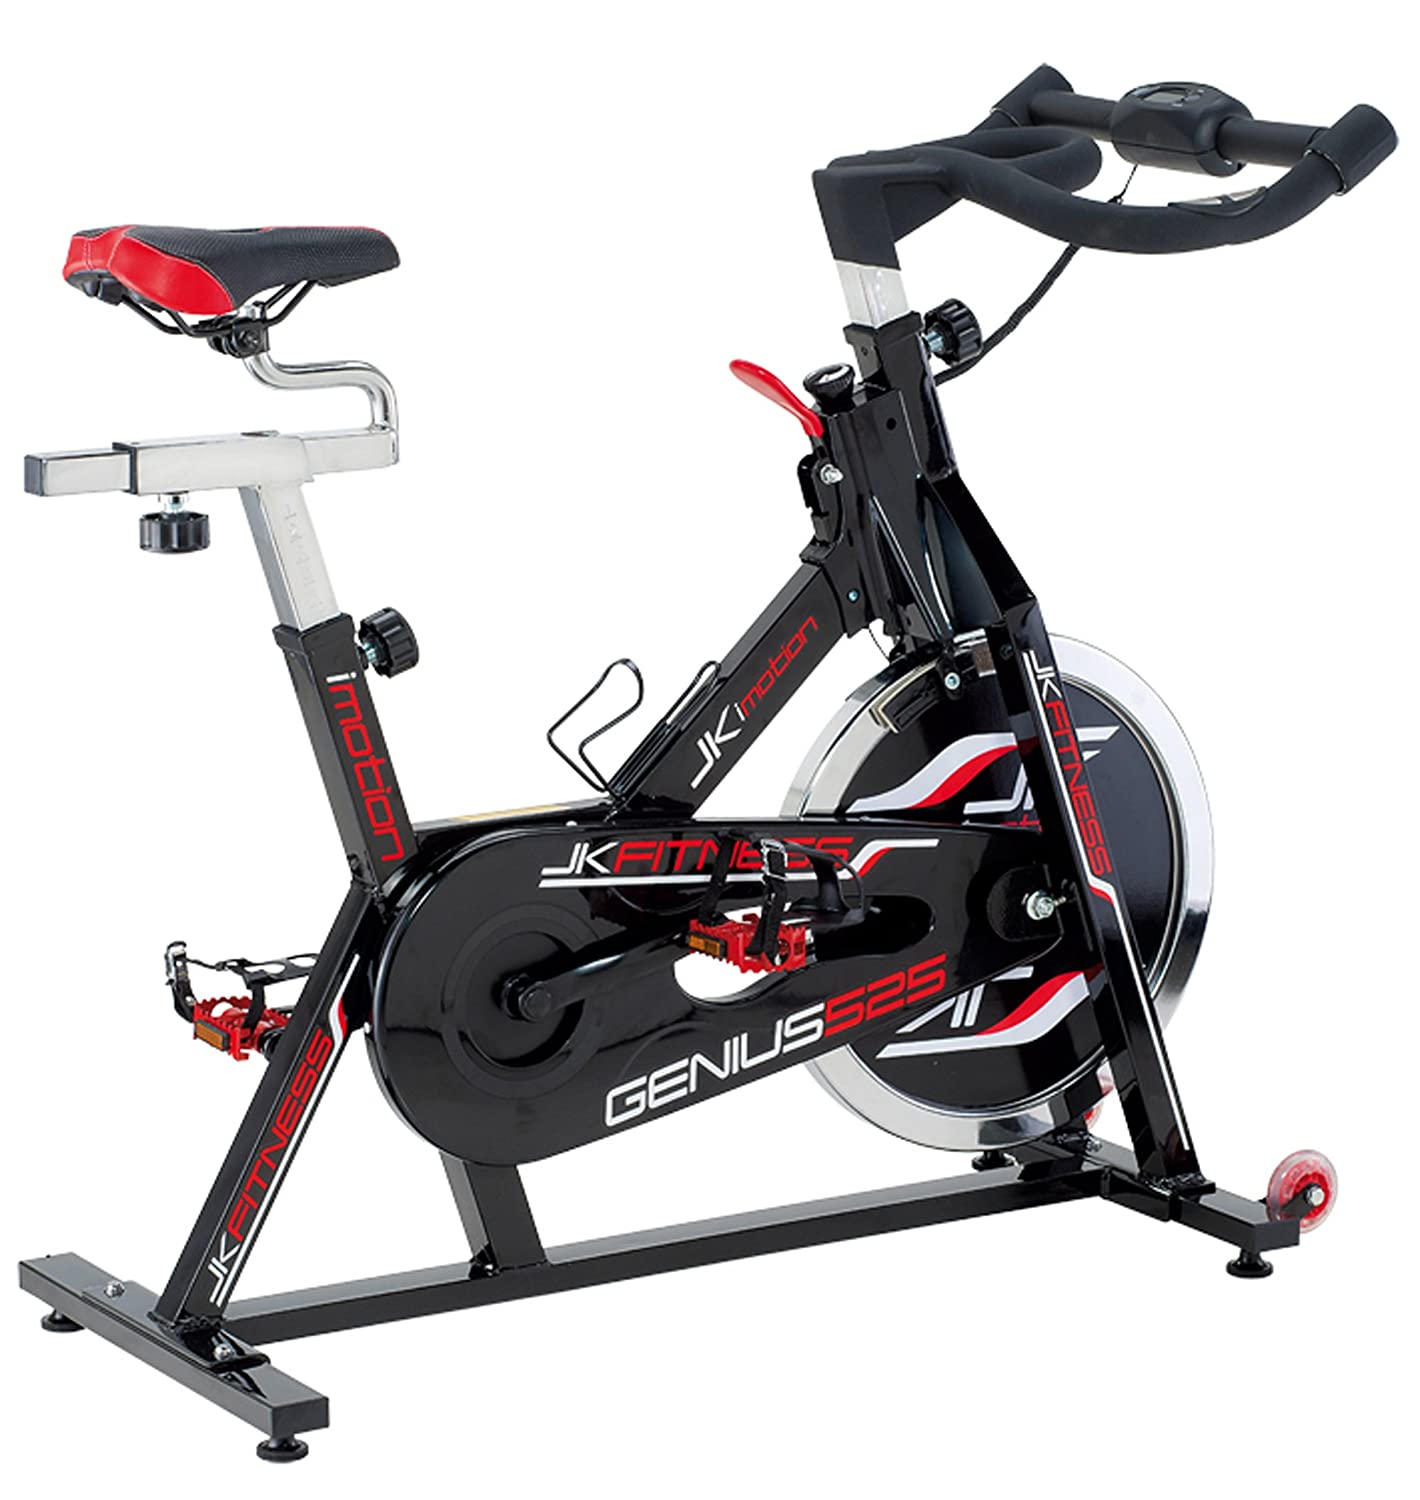 JK FITNESS – Genius 525 – Speed Bike